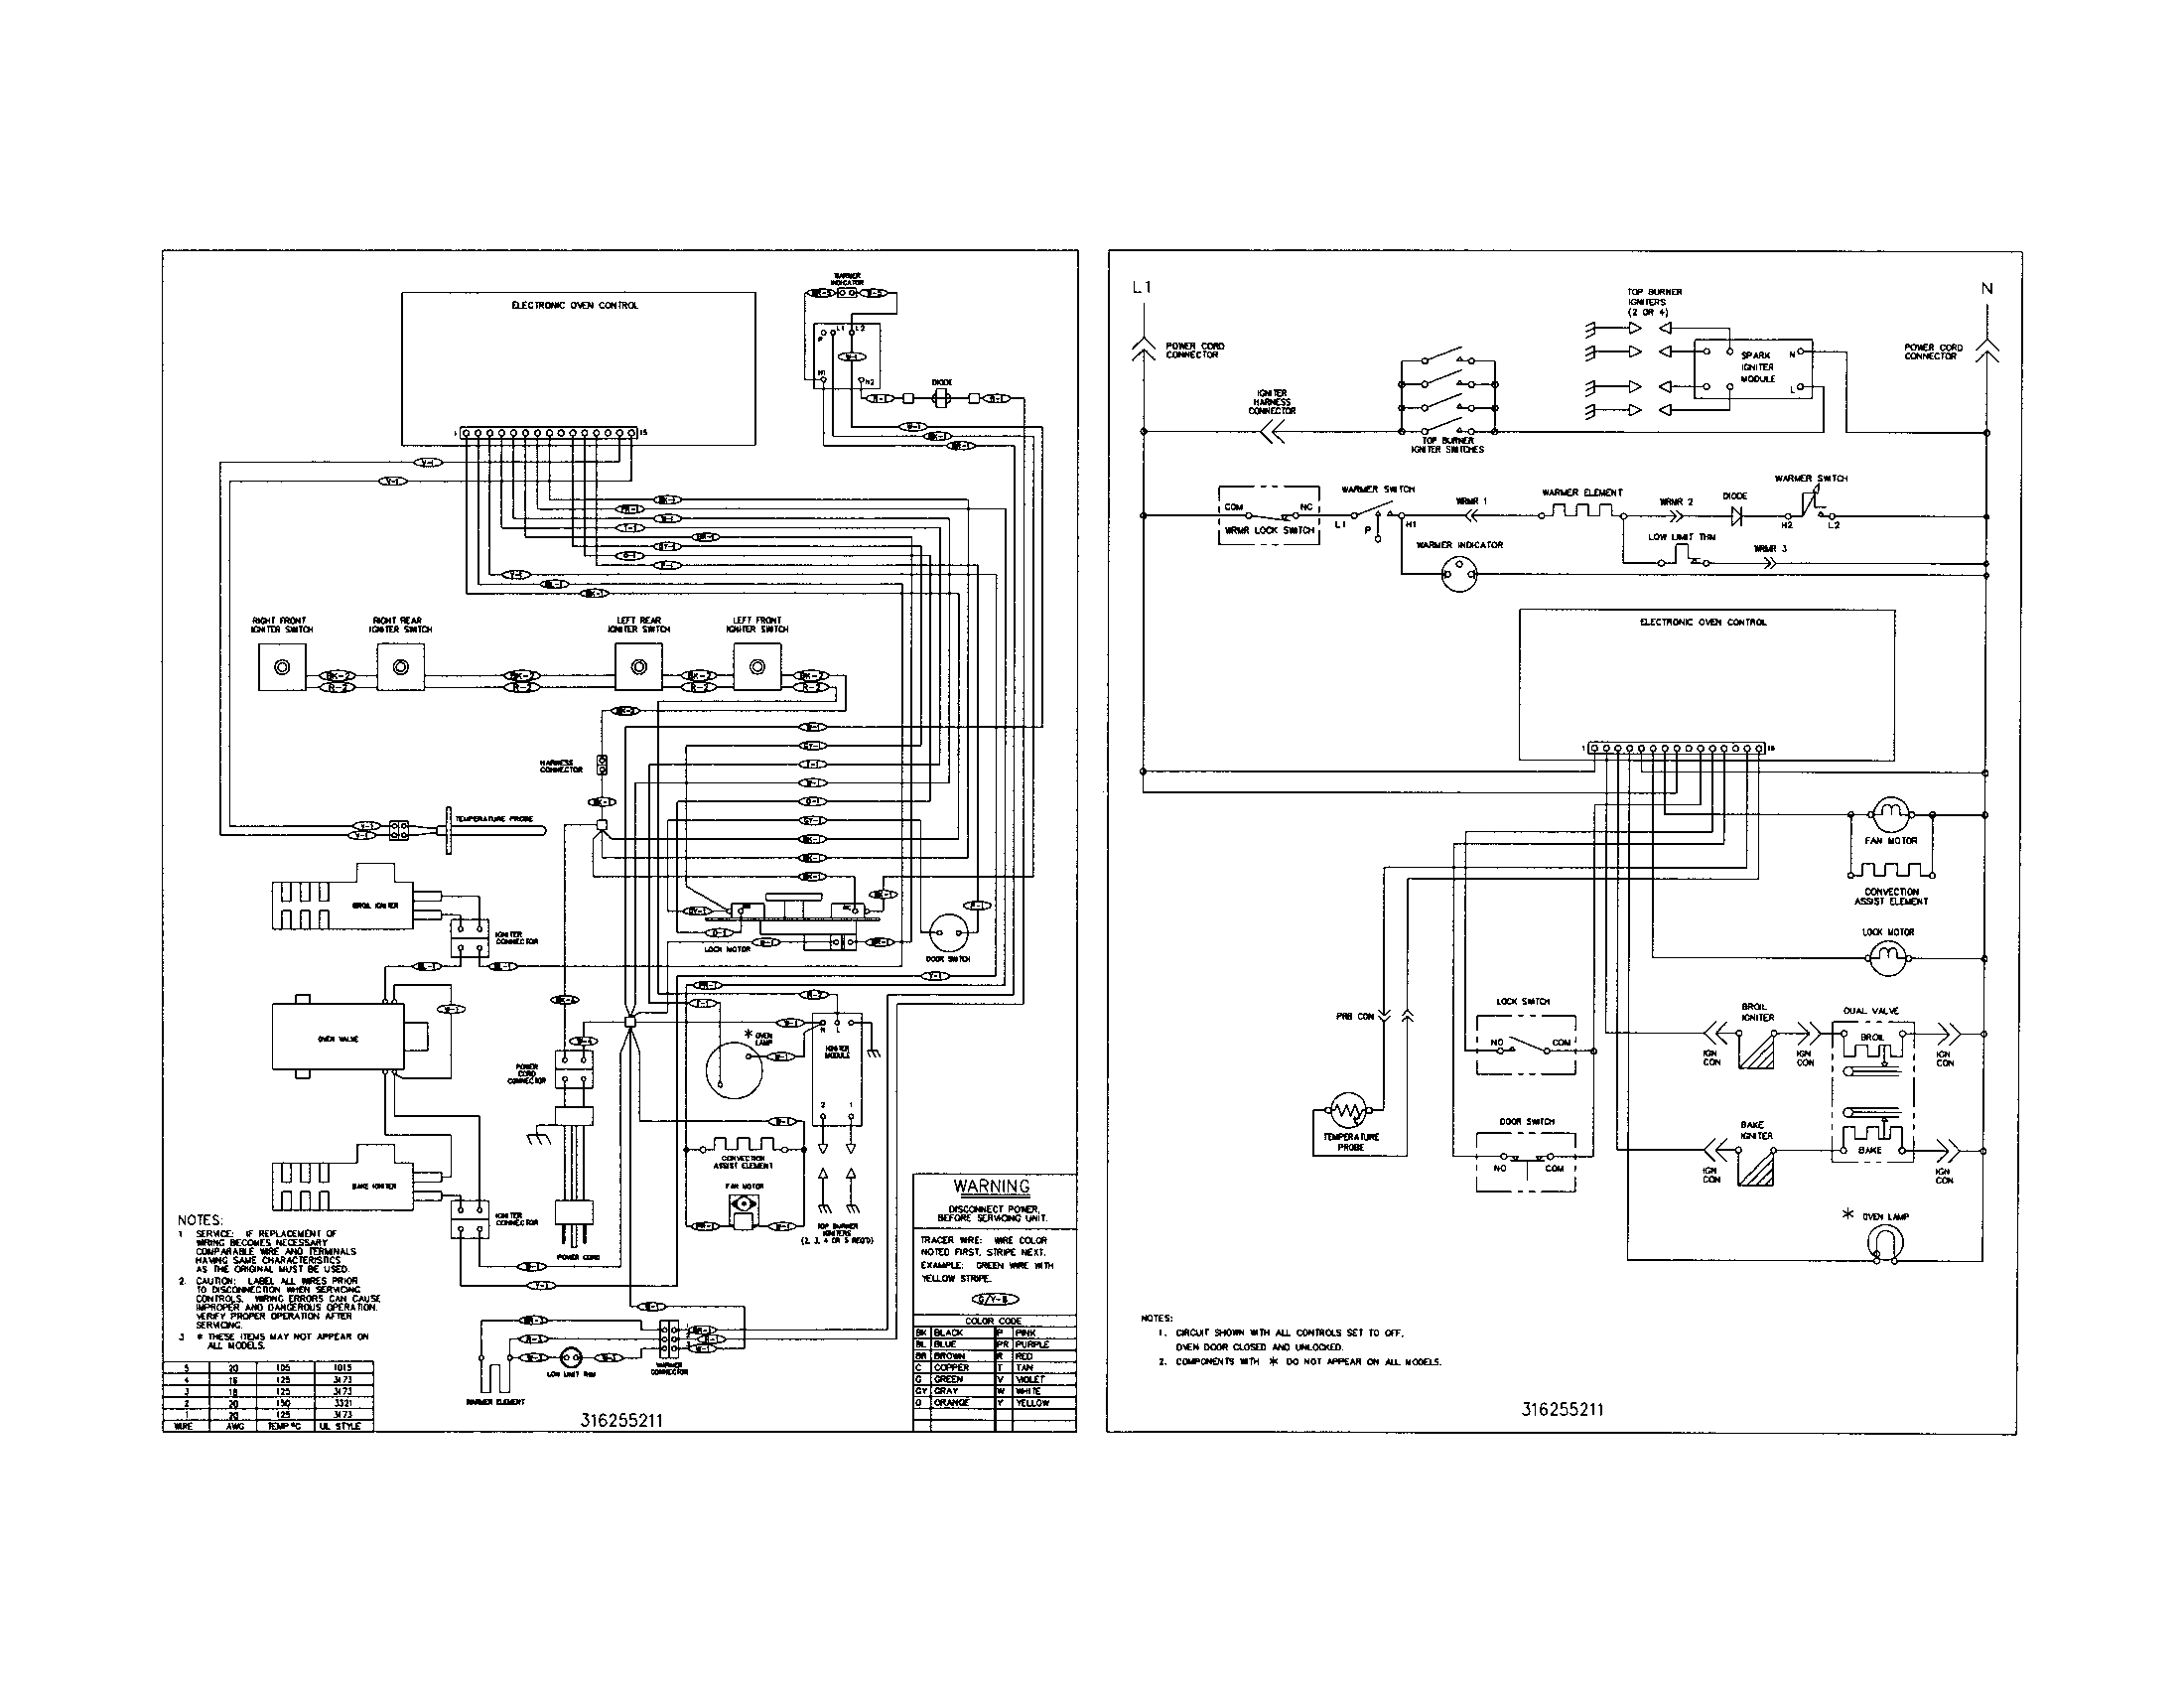 wiring schematic parts electric fireplace wiring diagram how to install an electric frigidaire wiring diagram at honlapkeszites.co